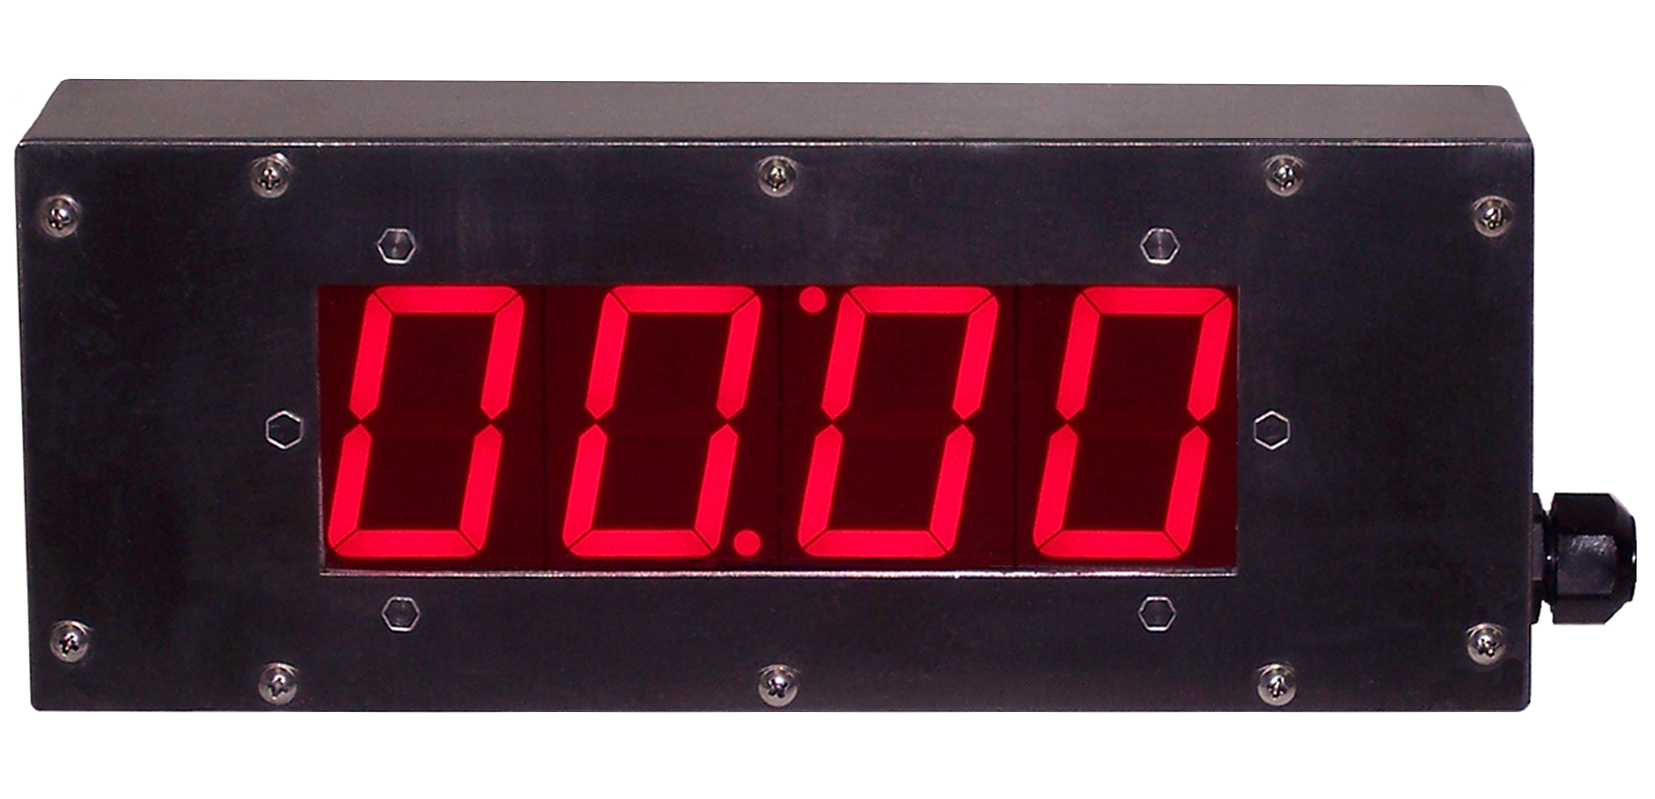 Digital LED electronic timer in a stainless steel enclosure